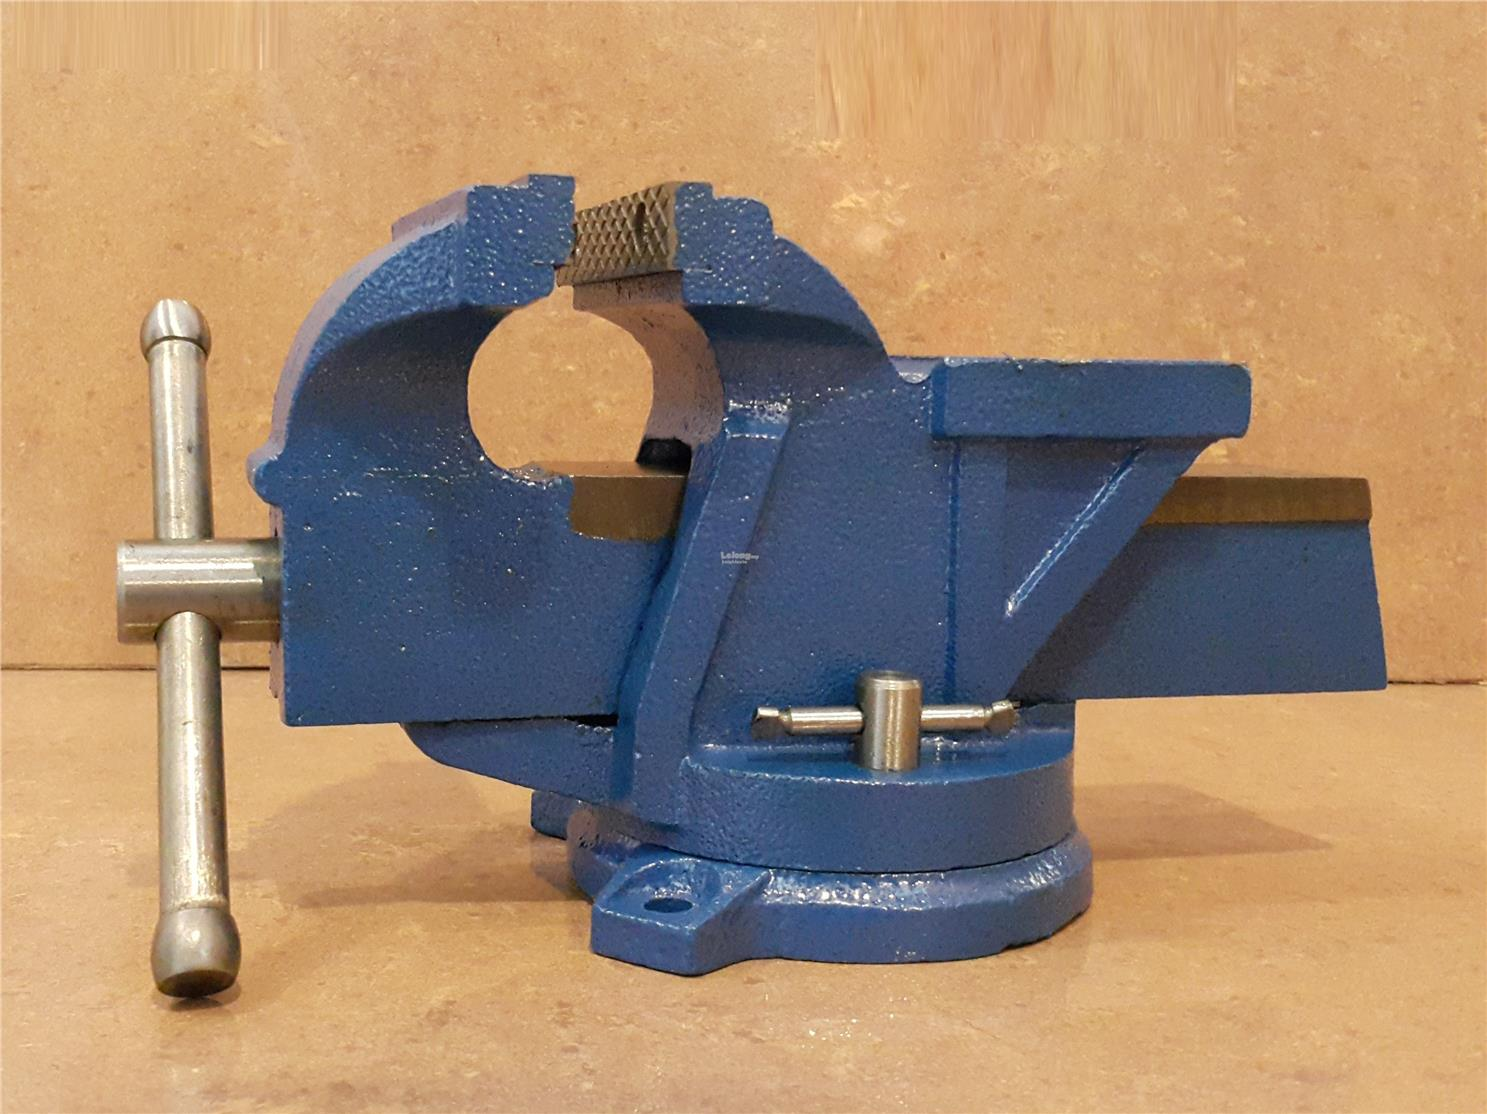 4 39 Heavy Duty Swivel Bench Vise With End 11 11 2017 9 15 Pm